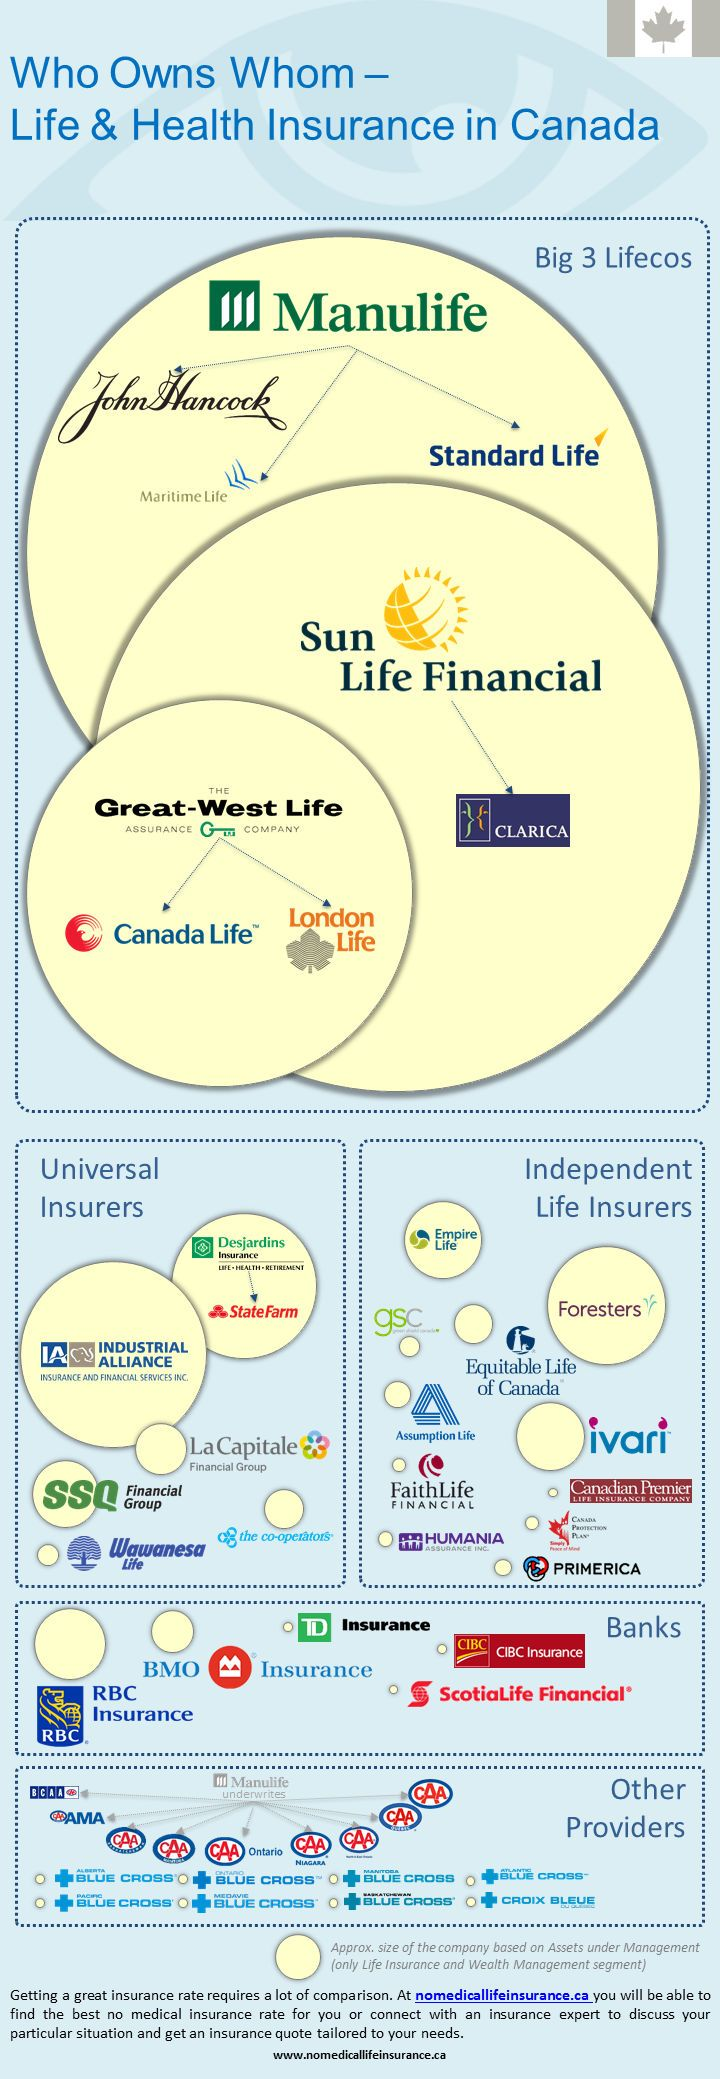 Who owns whom on a Canadian Life Insurance Market Life